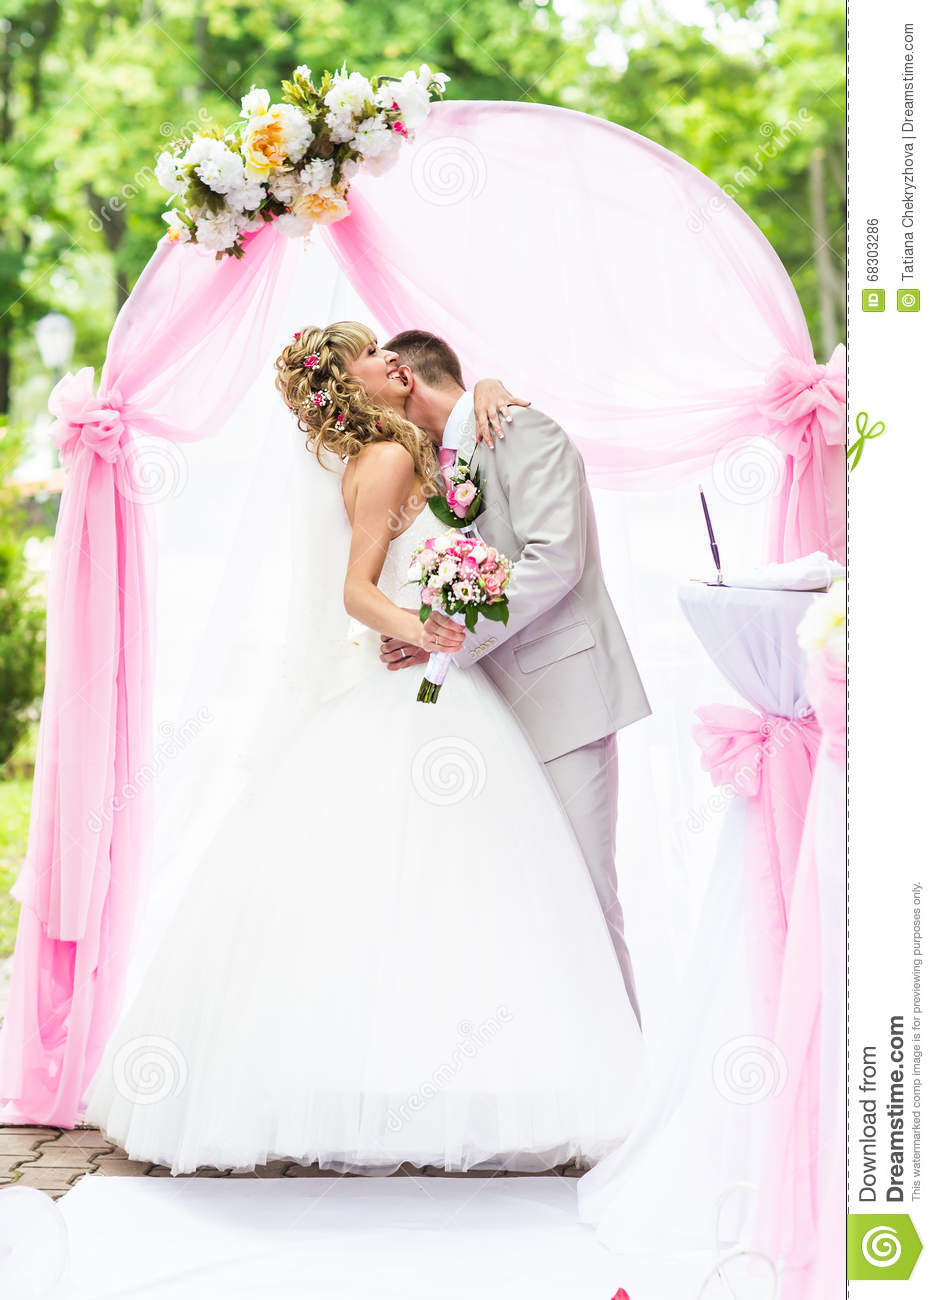 Happy Newlywed Romantic Couple Kissing At Wedding Aisle With Pink ...